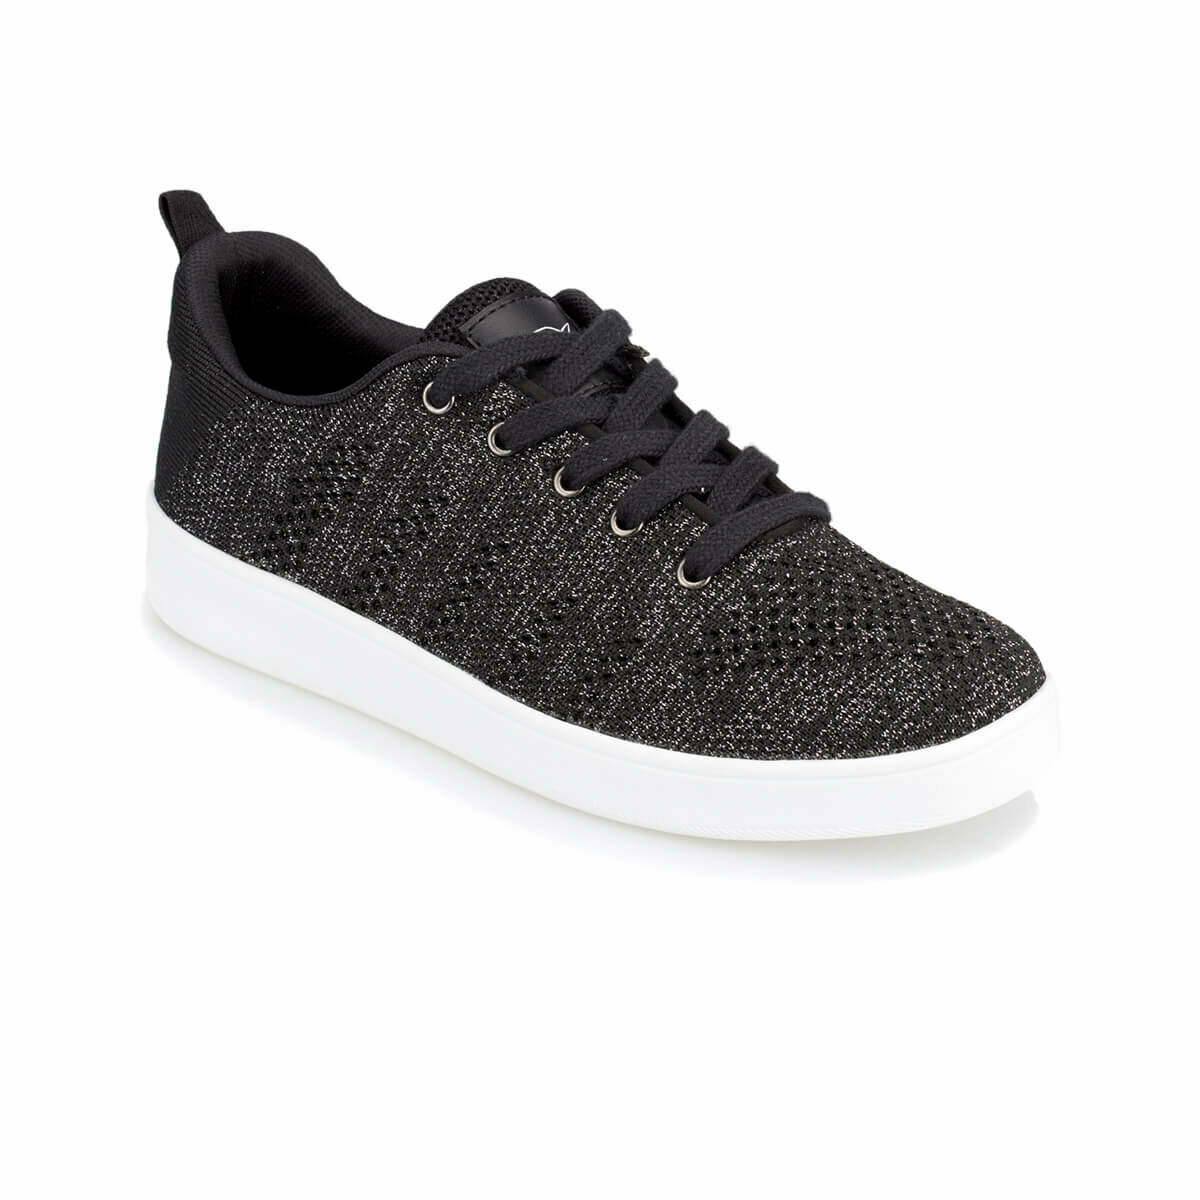 FLO ZURIH Black Women 'S Sneaker Shoes KINETIX